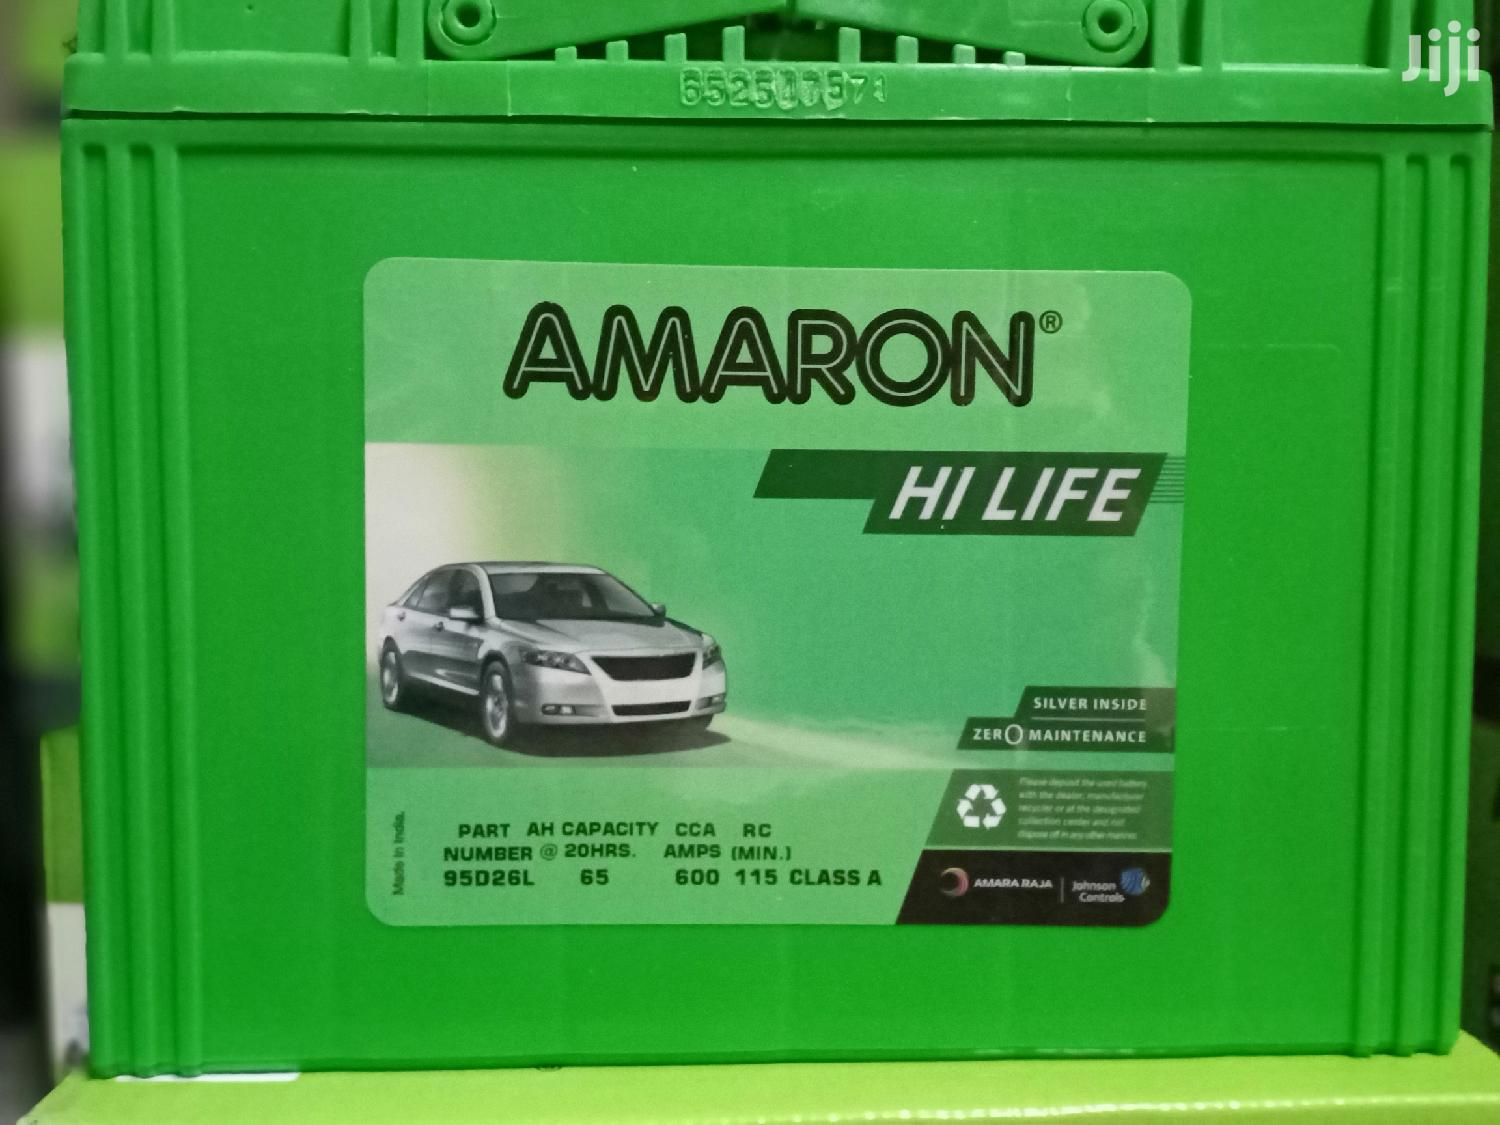 Jiji Kenya Car Batteries